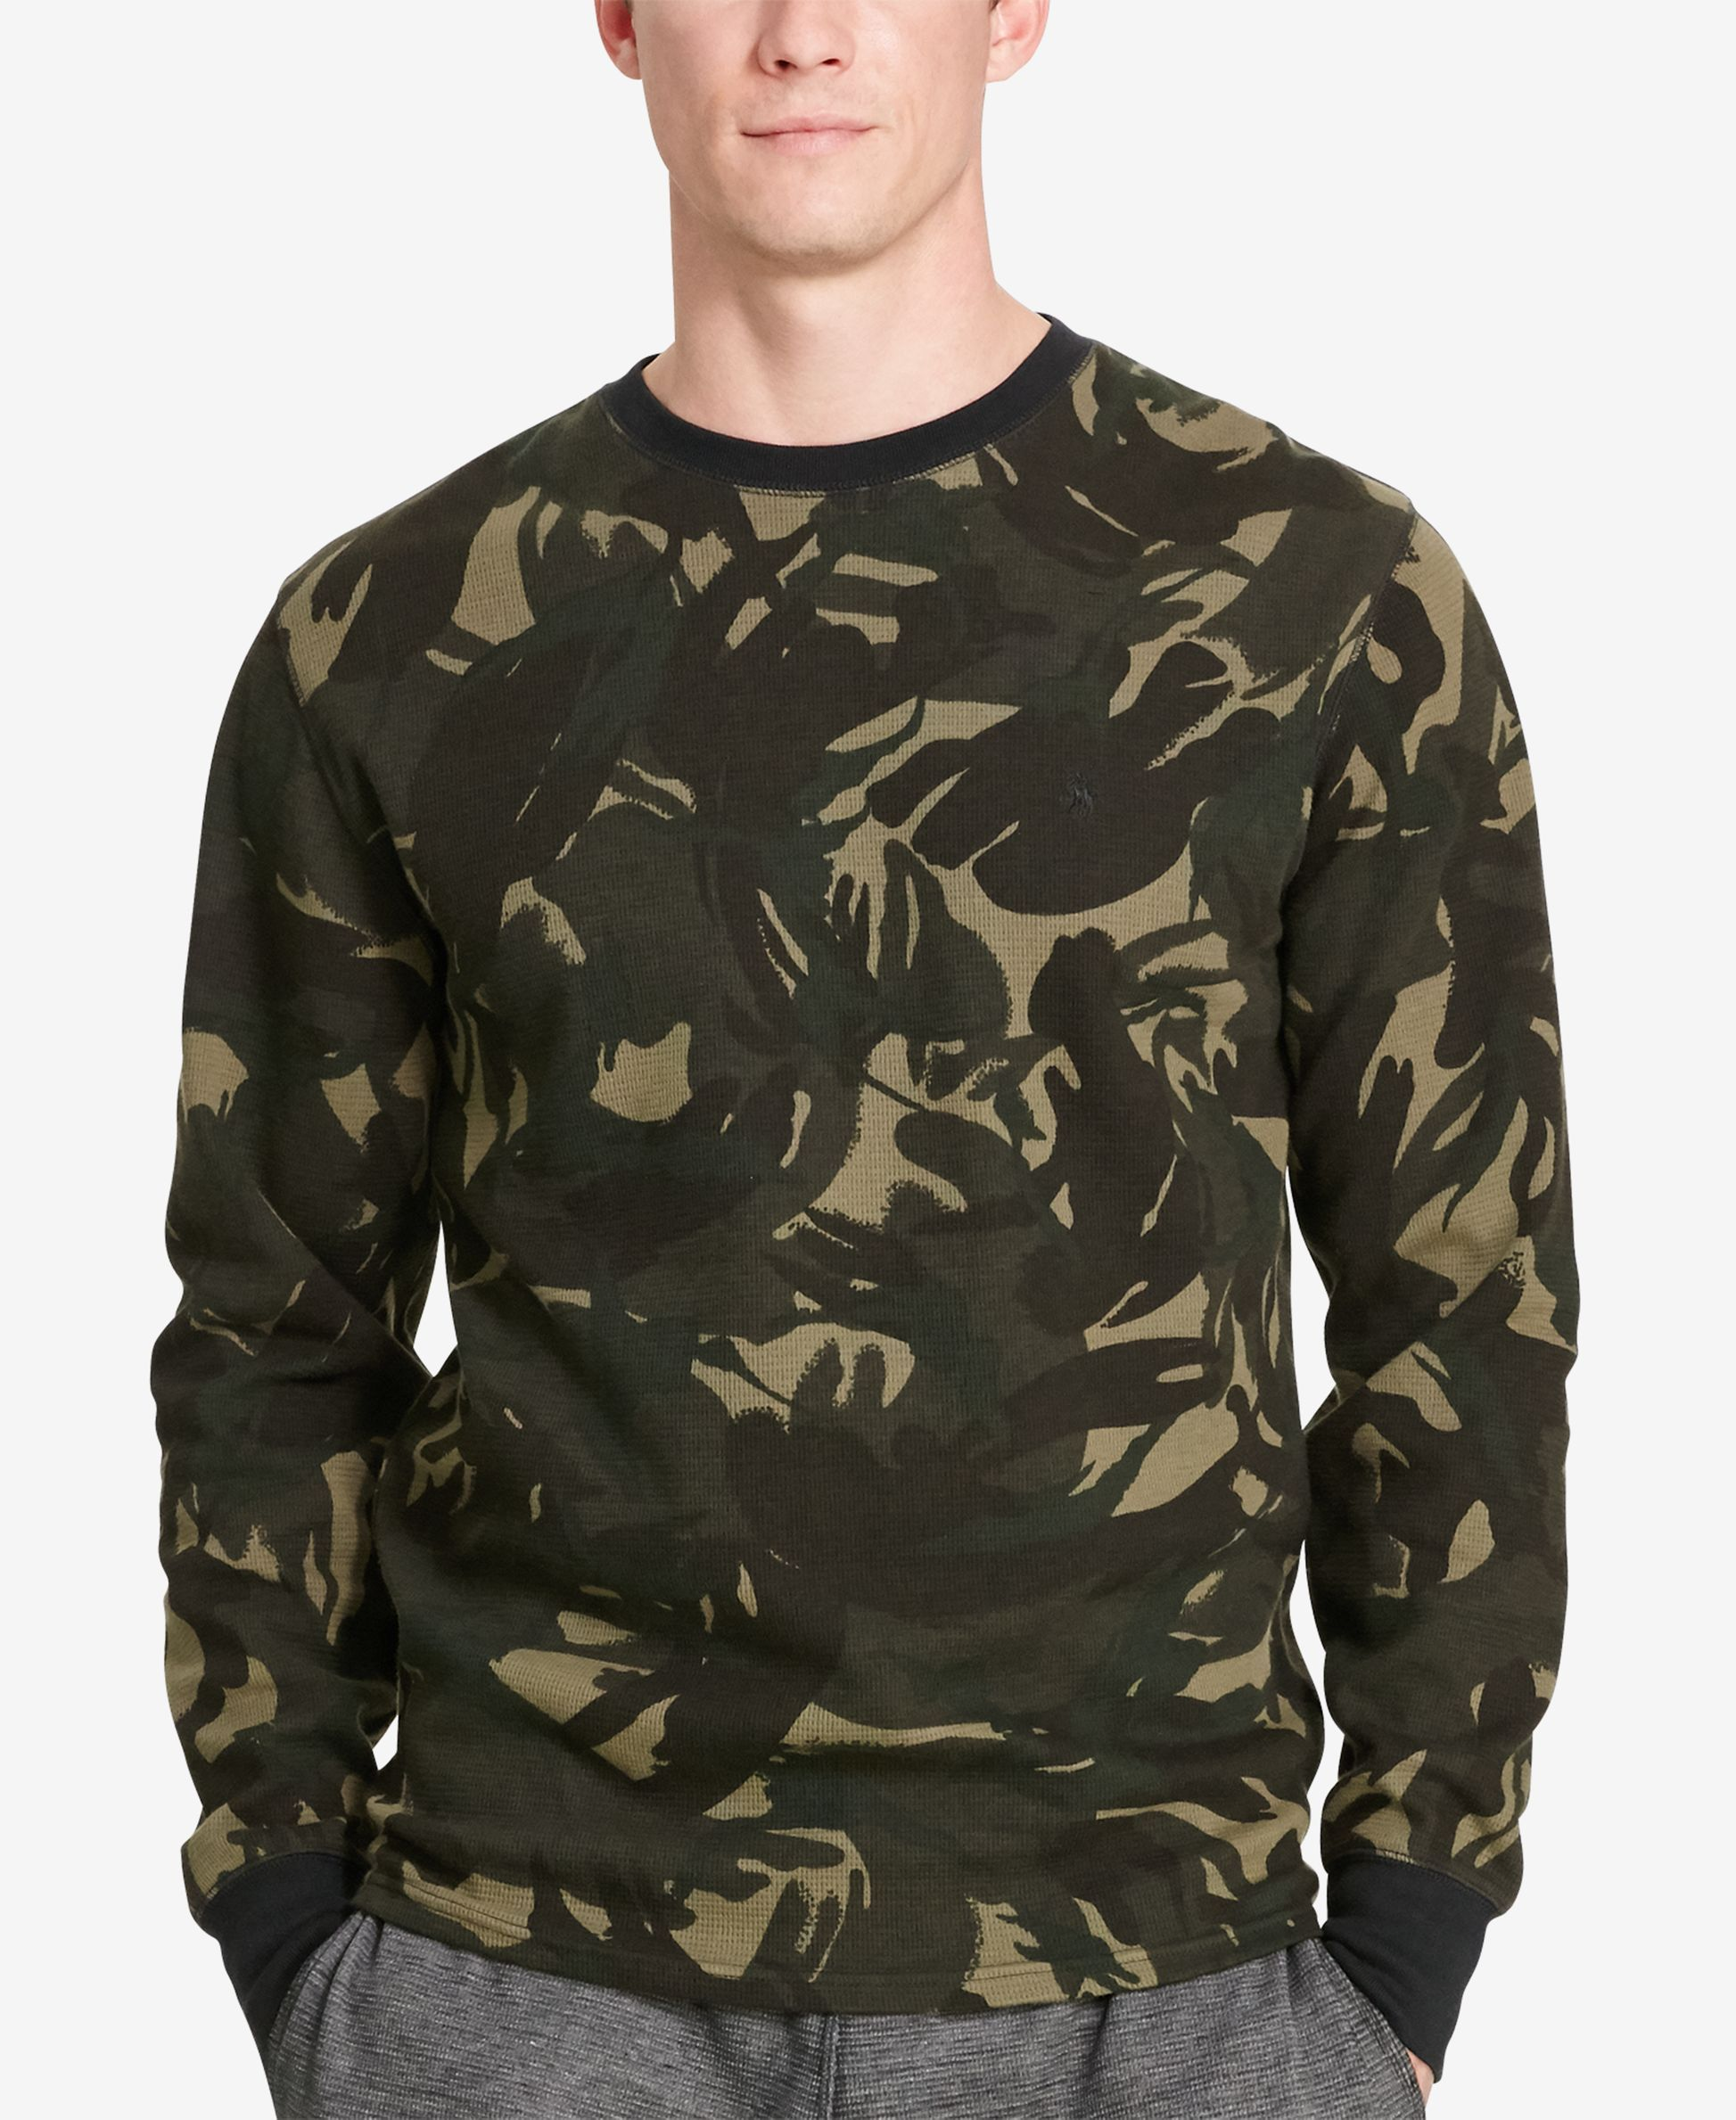 Polo Ralph Lauren Men's Camo Waffle-Knit Crew-Neck Thermal Top - Pajamas,  Lounge & Sleepwear - Men - Macy's